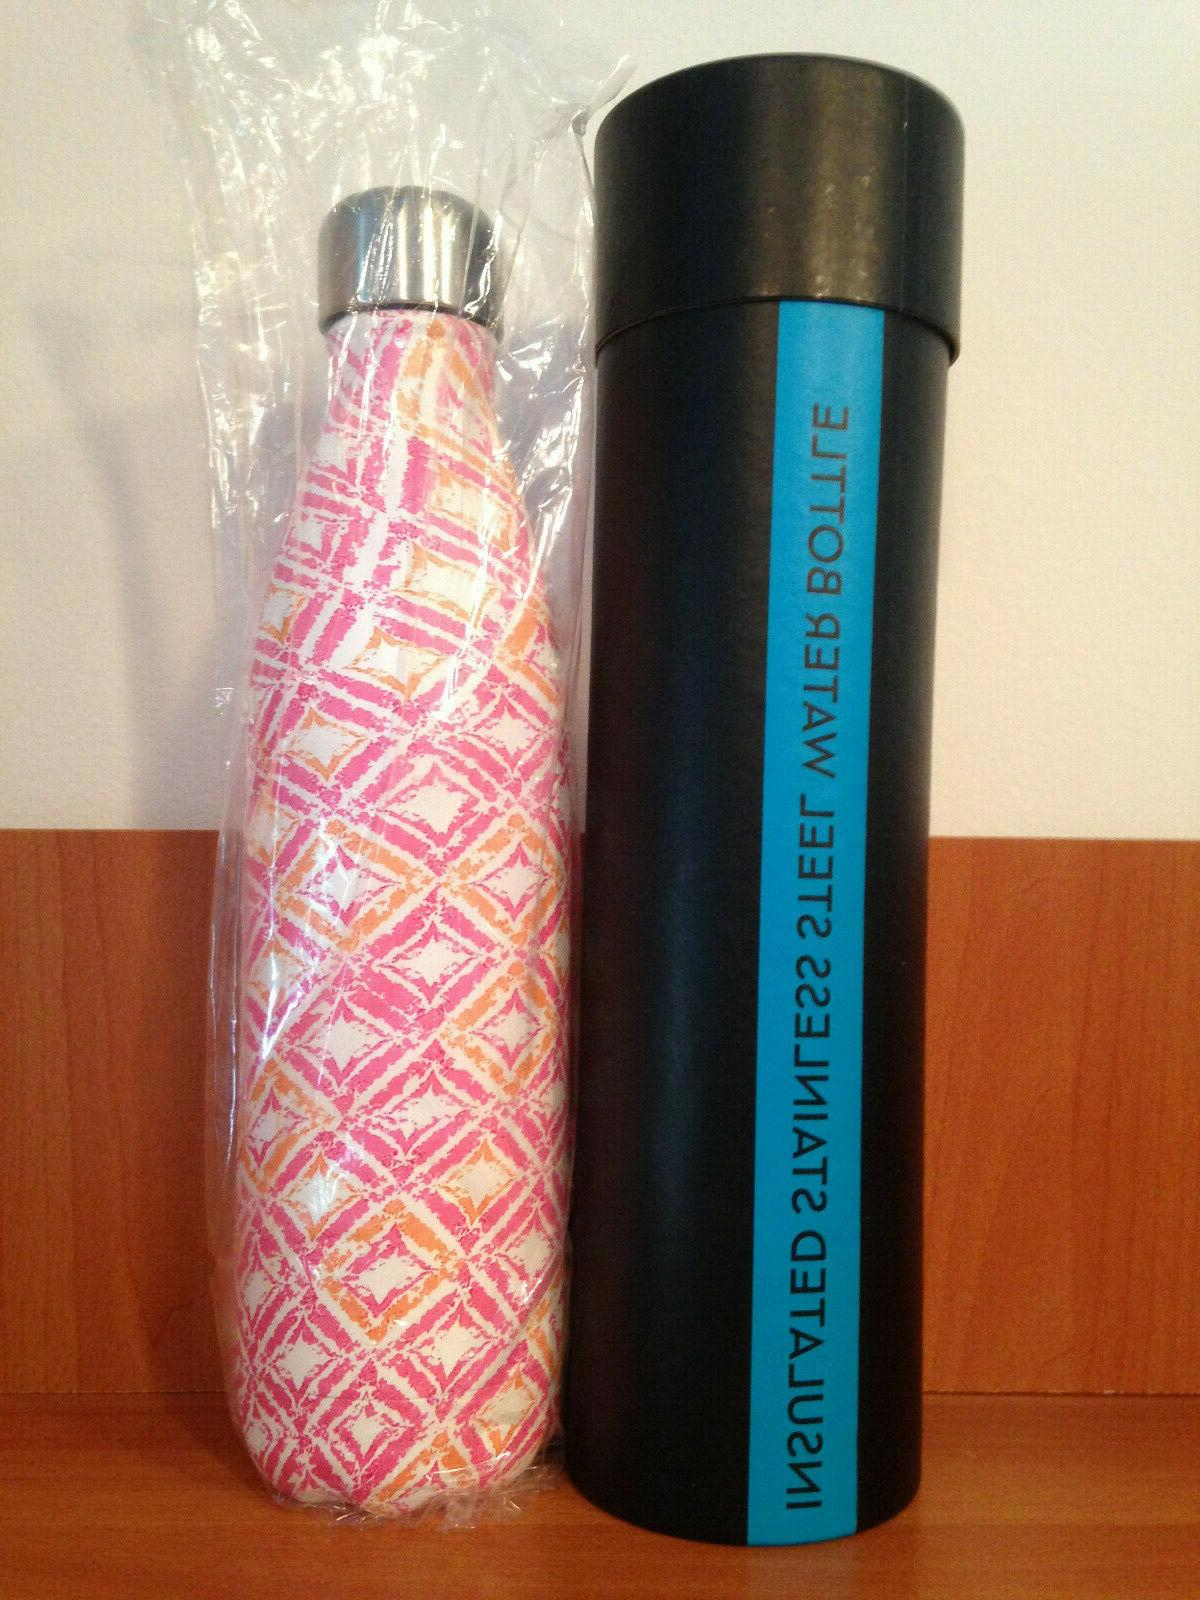 S'well water bottle oz New 4 Collection